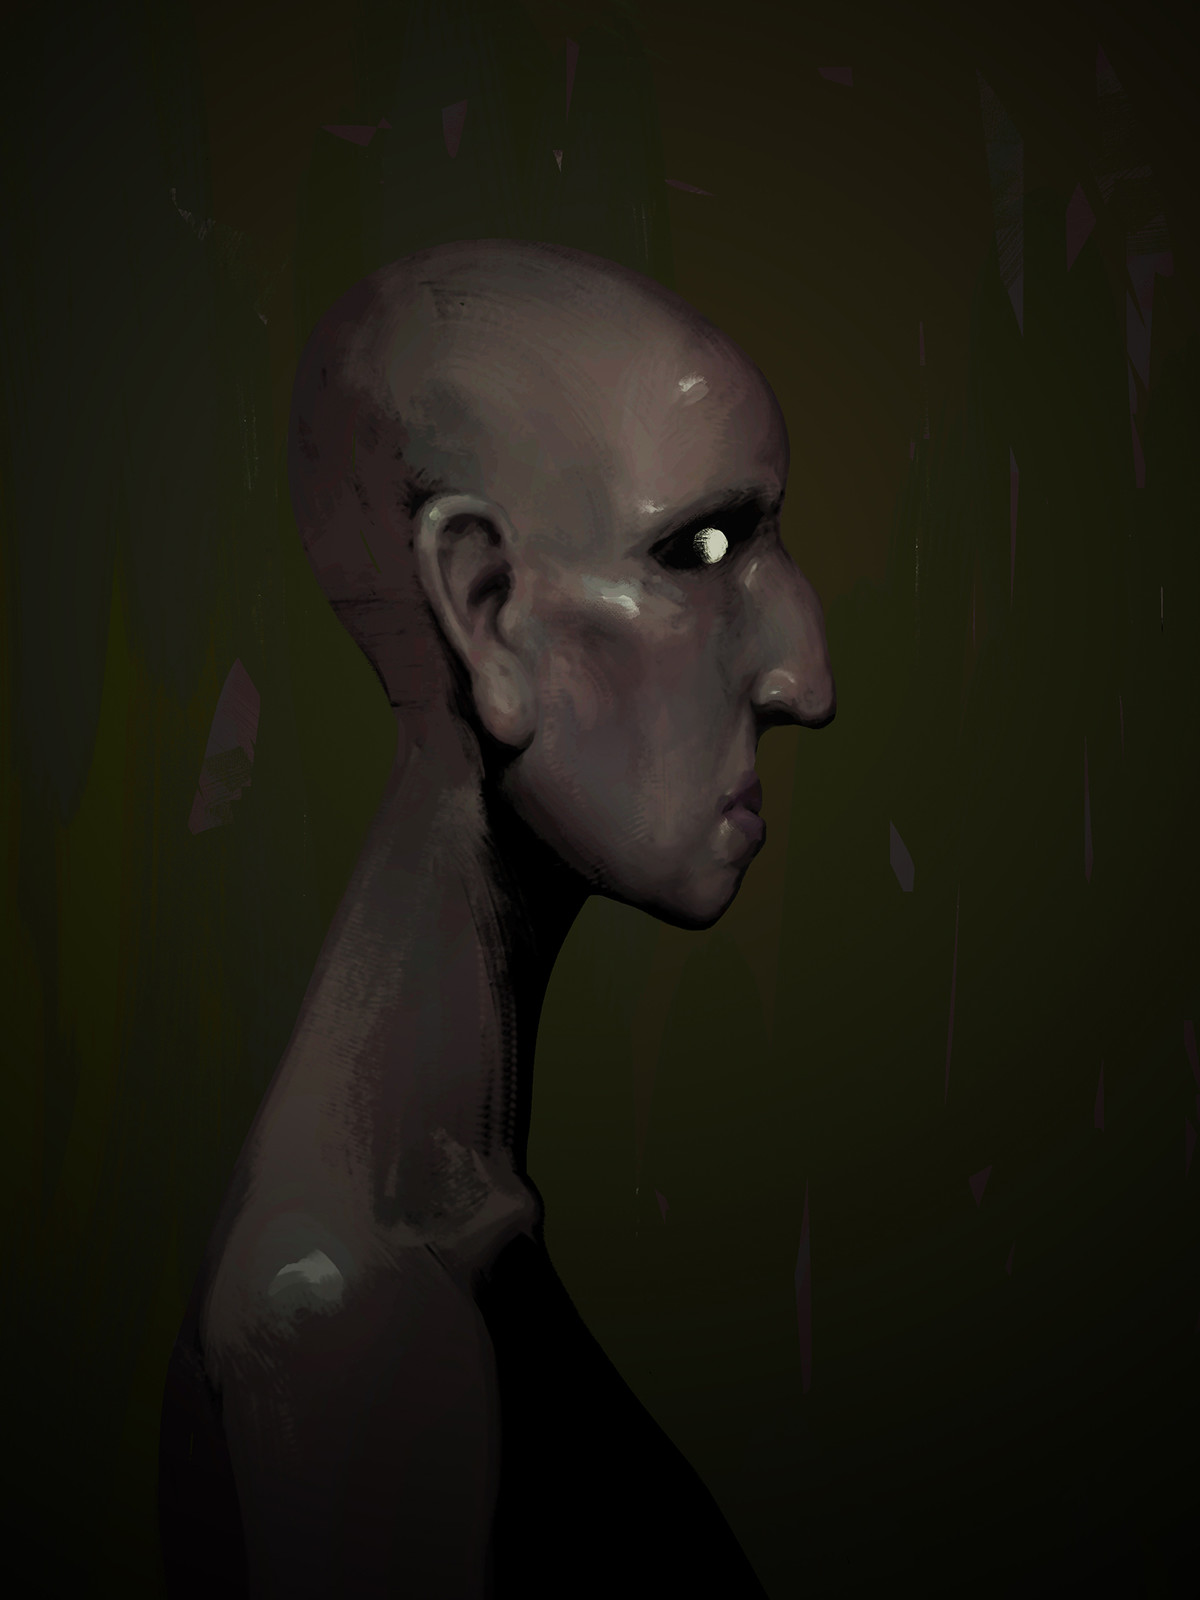 Portrait of a Humanoid